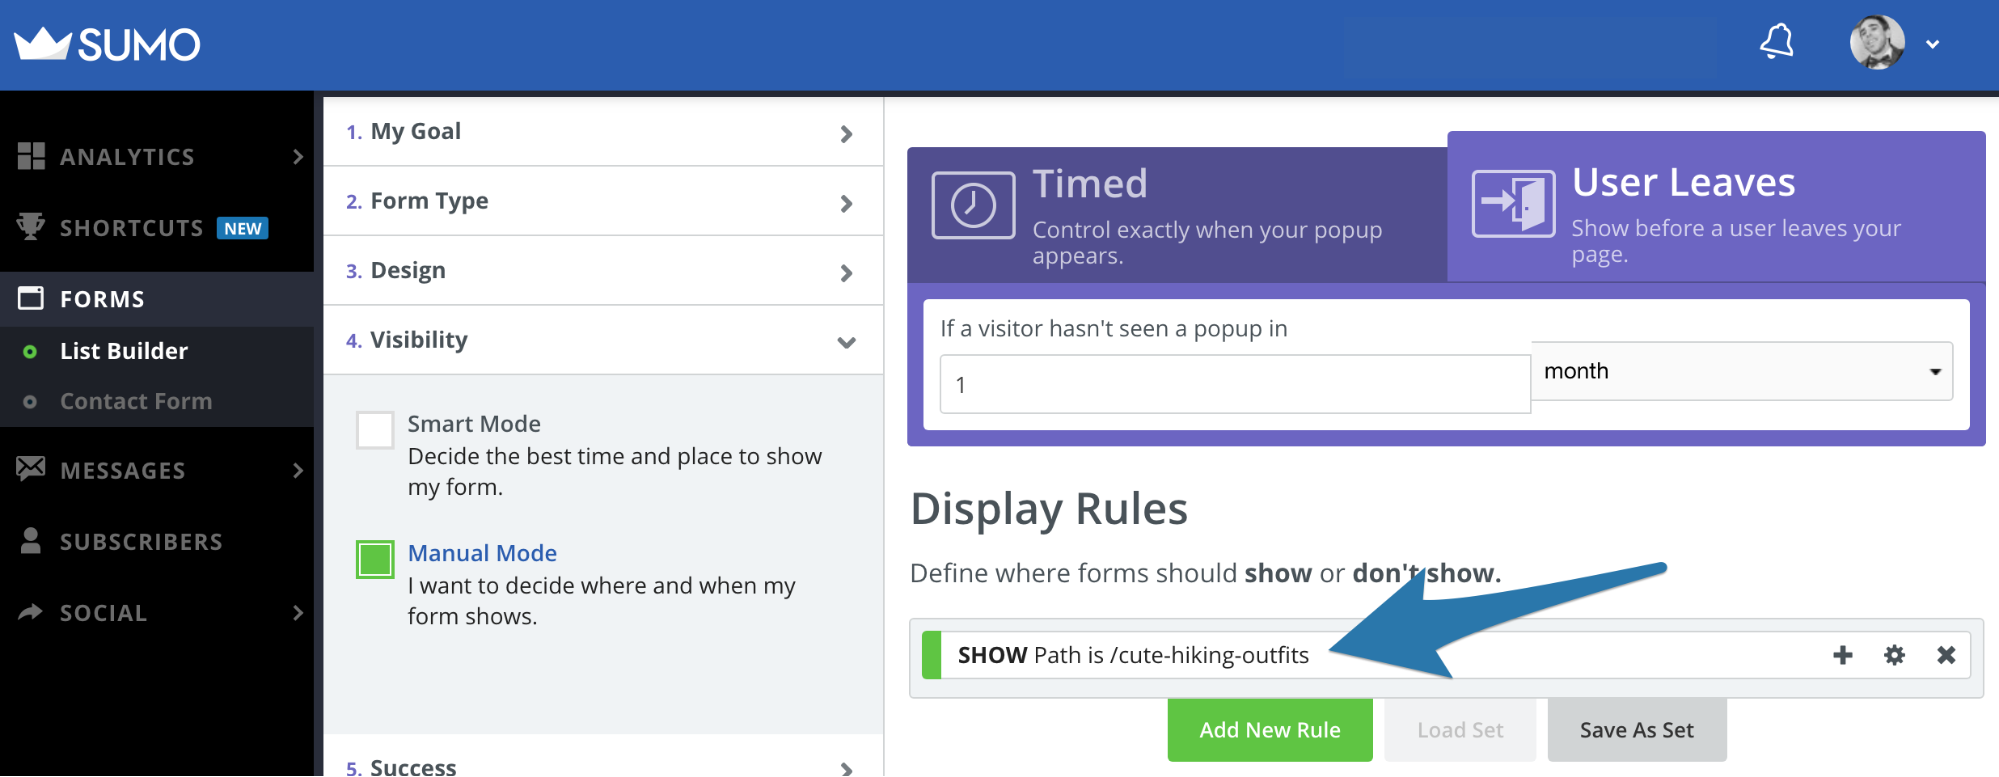 Screenshot showing popup settings page on the Sumo dashboard